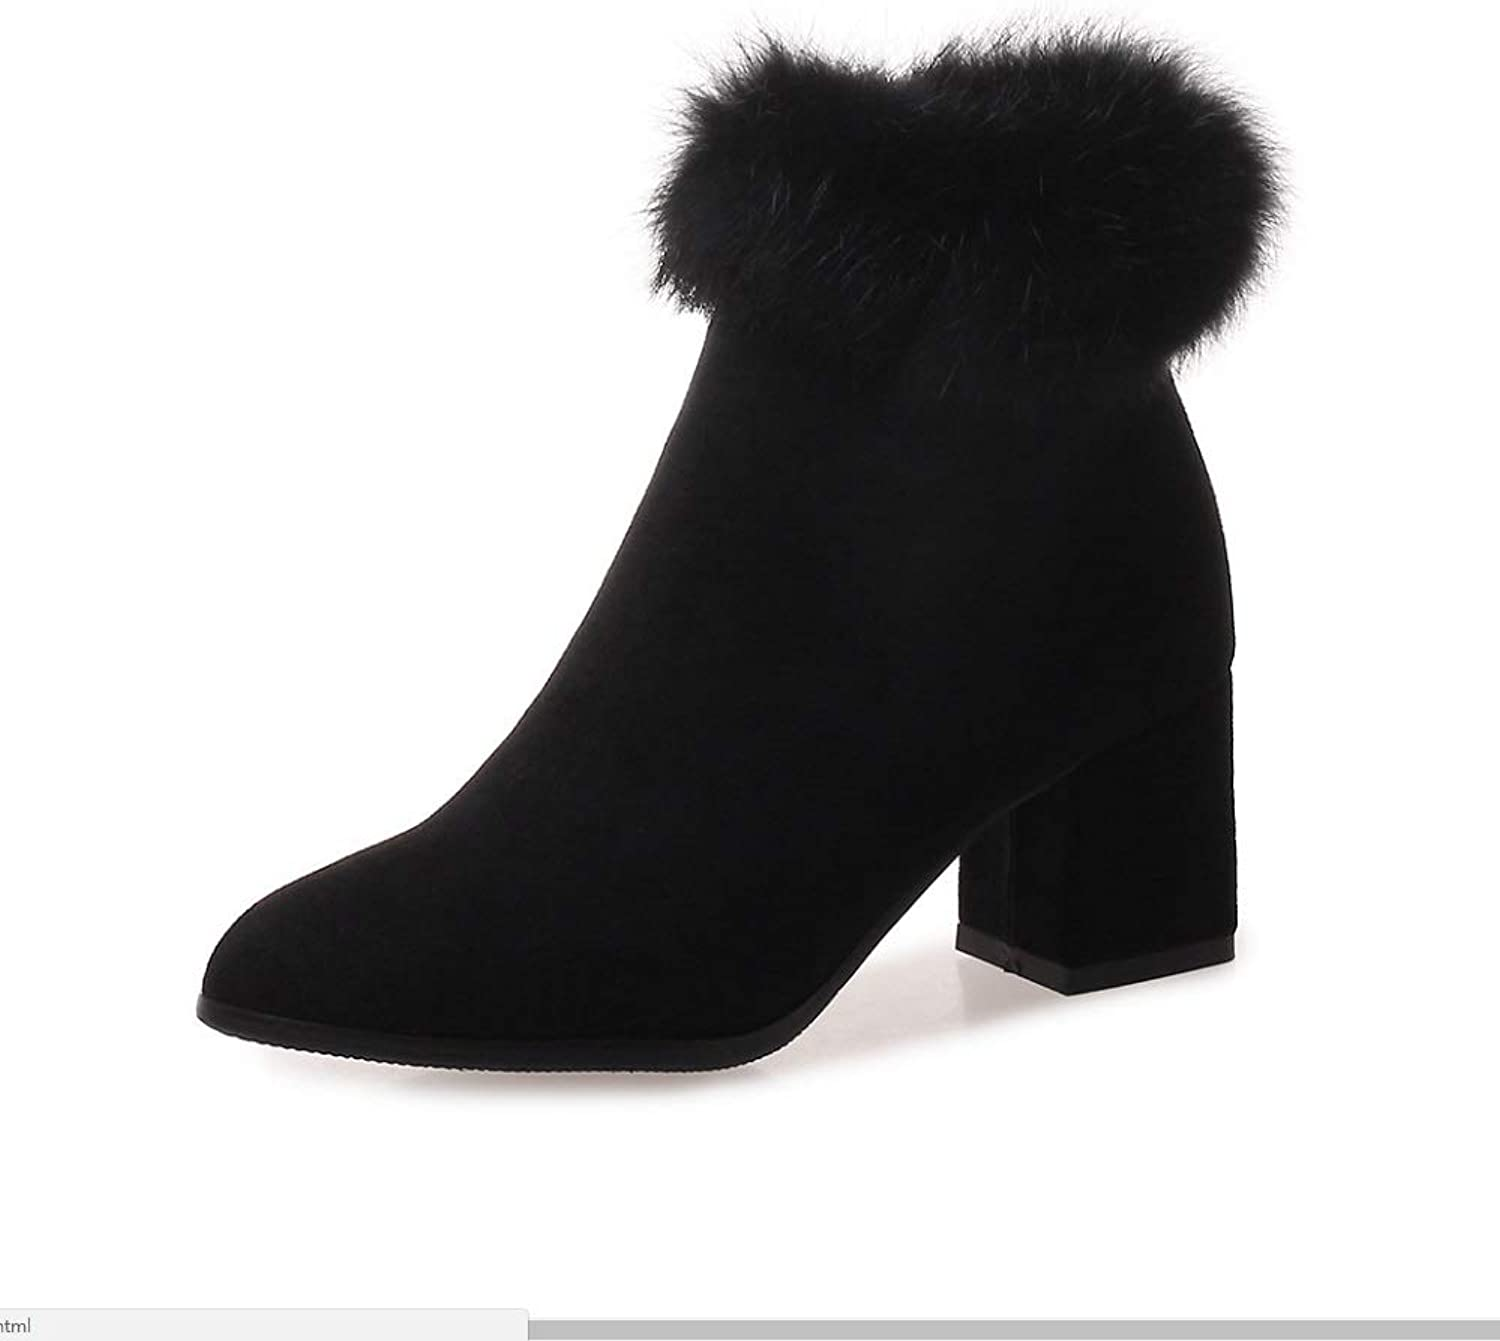 Womens High Heels Pointed Toe Ankle Boots Block Chunky Heels Short Boots Autumn Winter Booties Grip Sole Warm Sexy Fleece Collar Boots Size